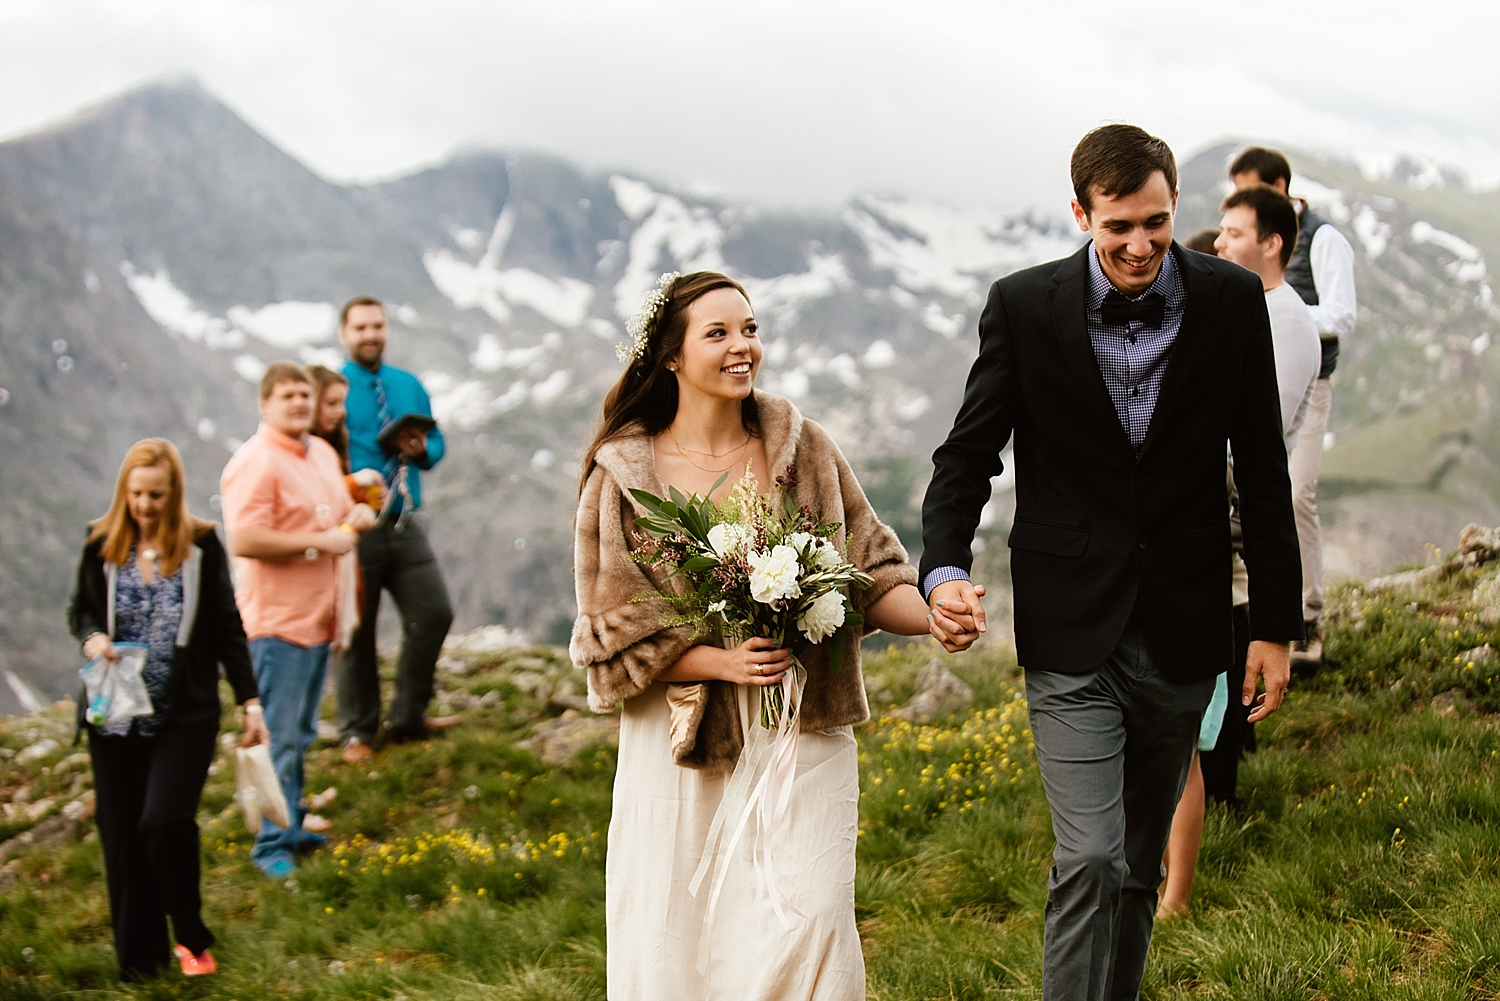 That white peony bouquet is so beautiful! I can't wait to get married in the mountains off of Trail Ridge Road in RMNP! | Colorado mountaintop elopement photos by adventure wedding photographer, Maddie Mae.